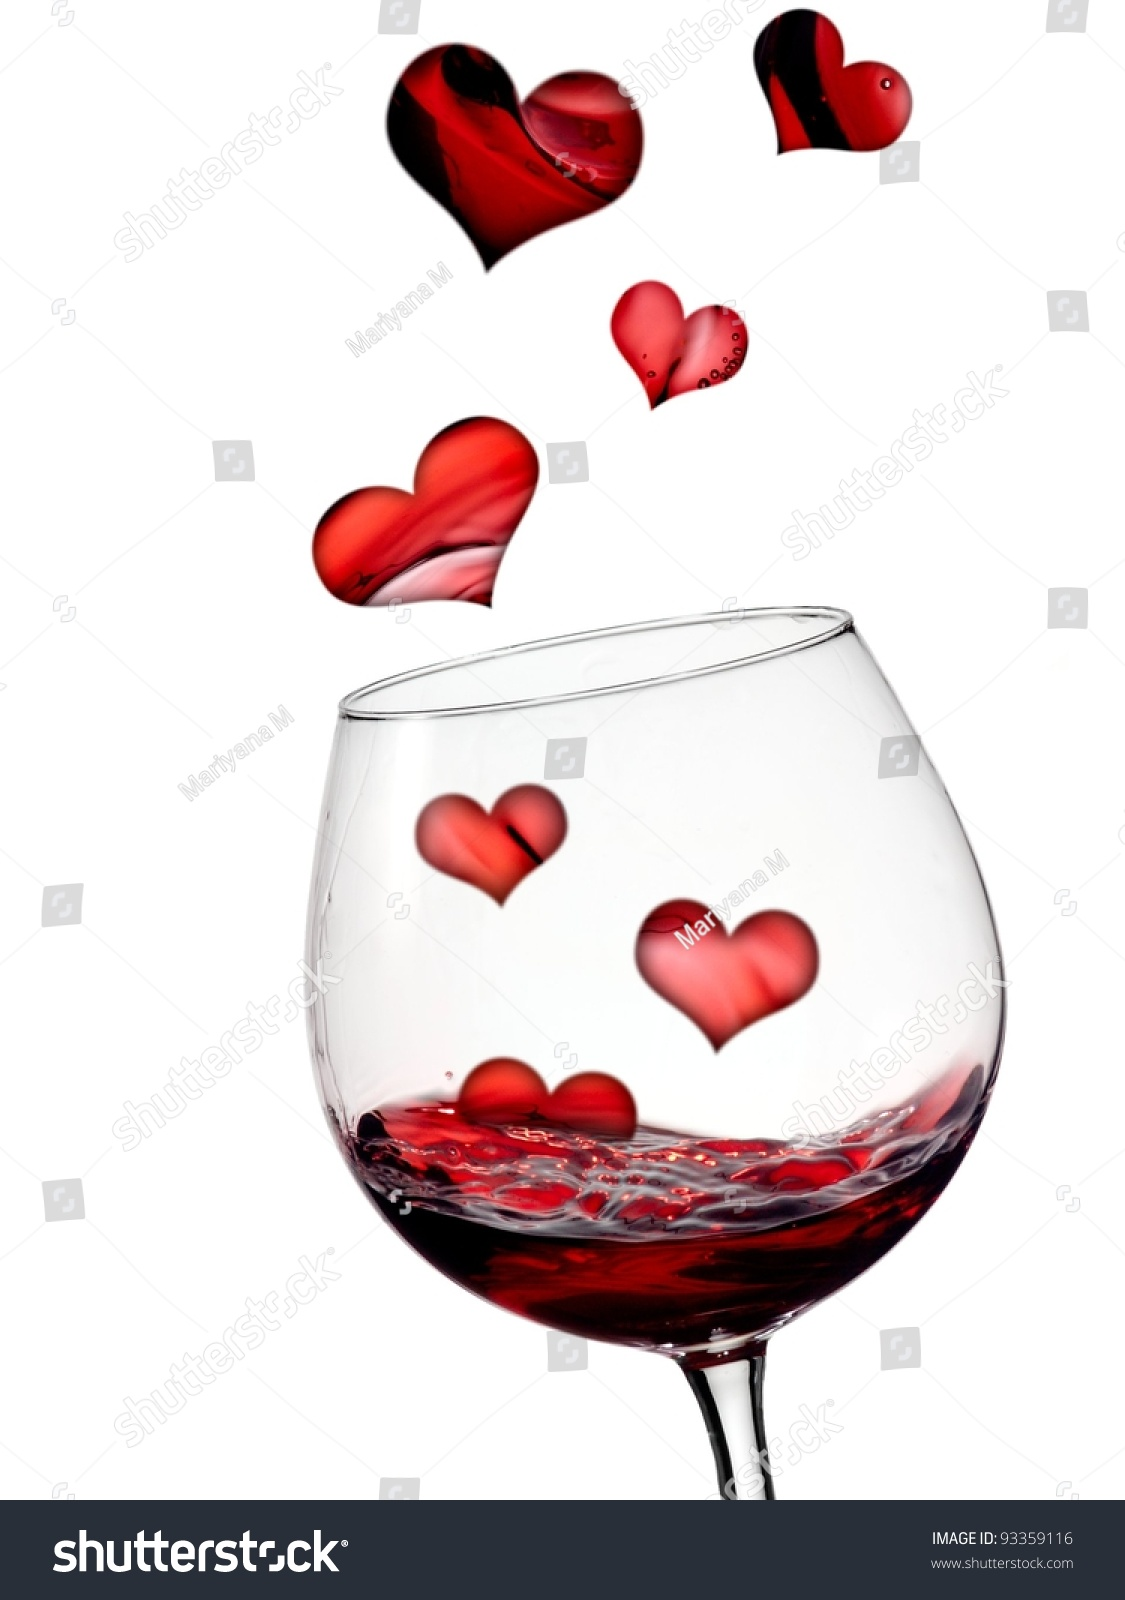 Where To Find Wine Glasses Hearts Flying In Glass With Red Wine Stock Photo 93359116